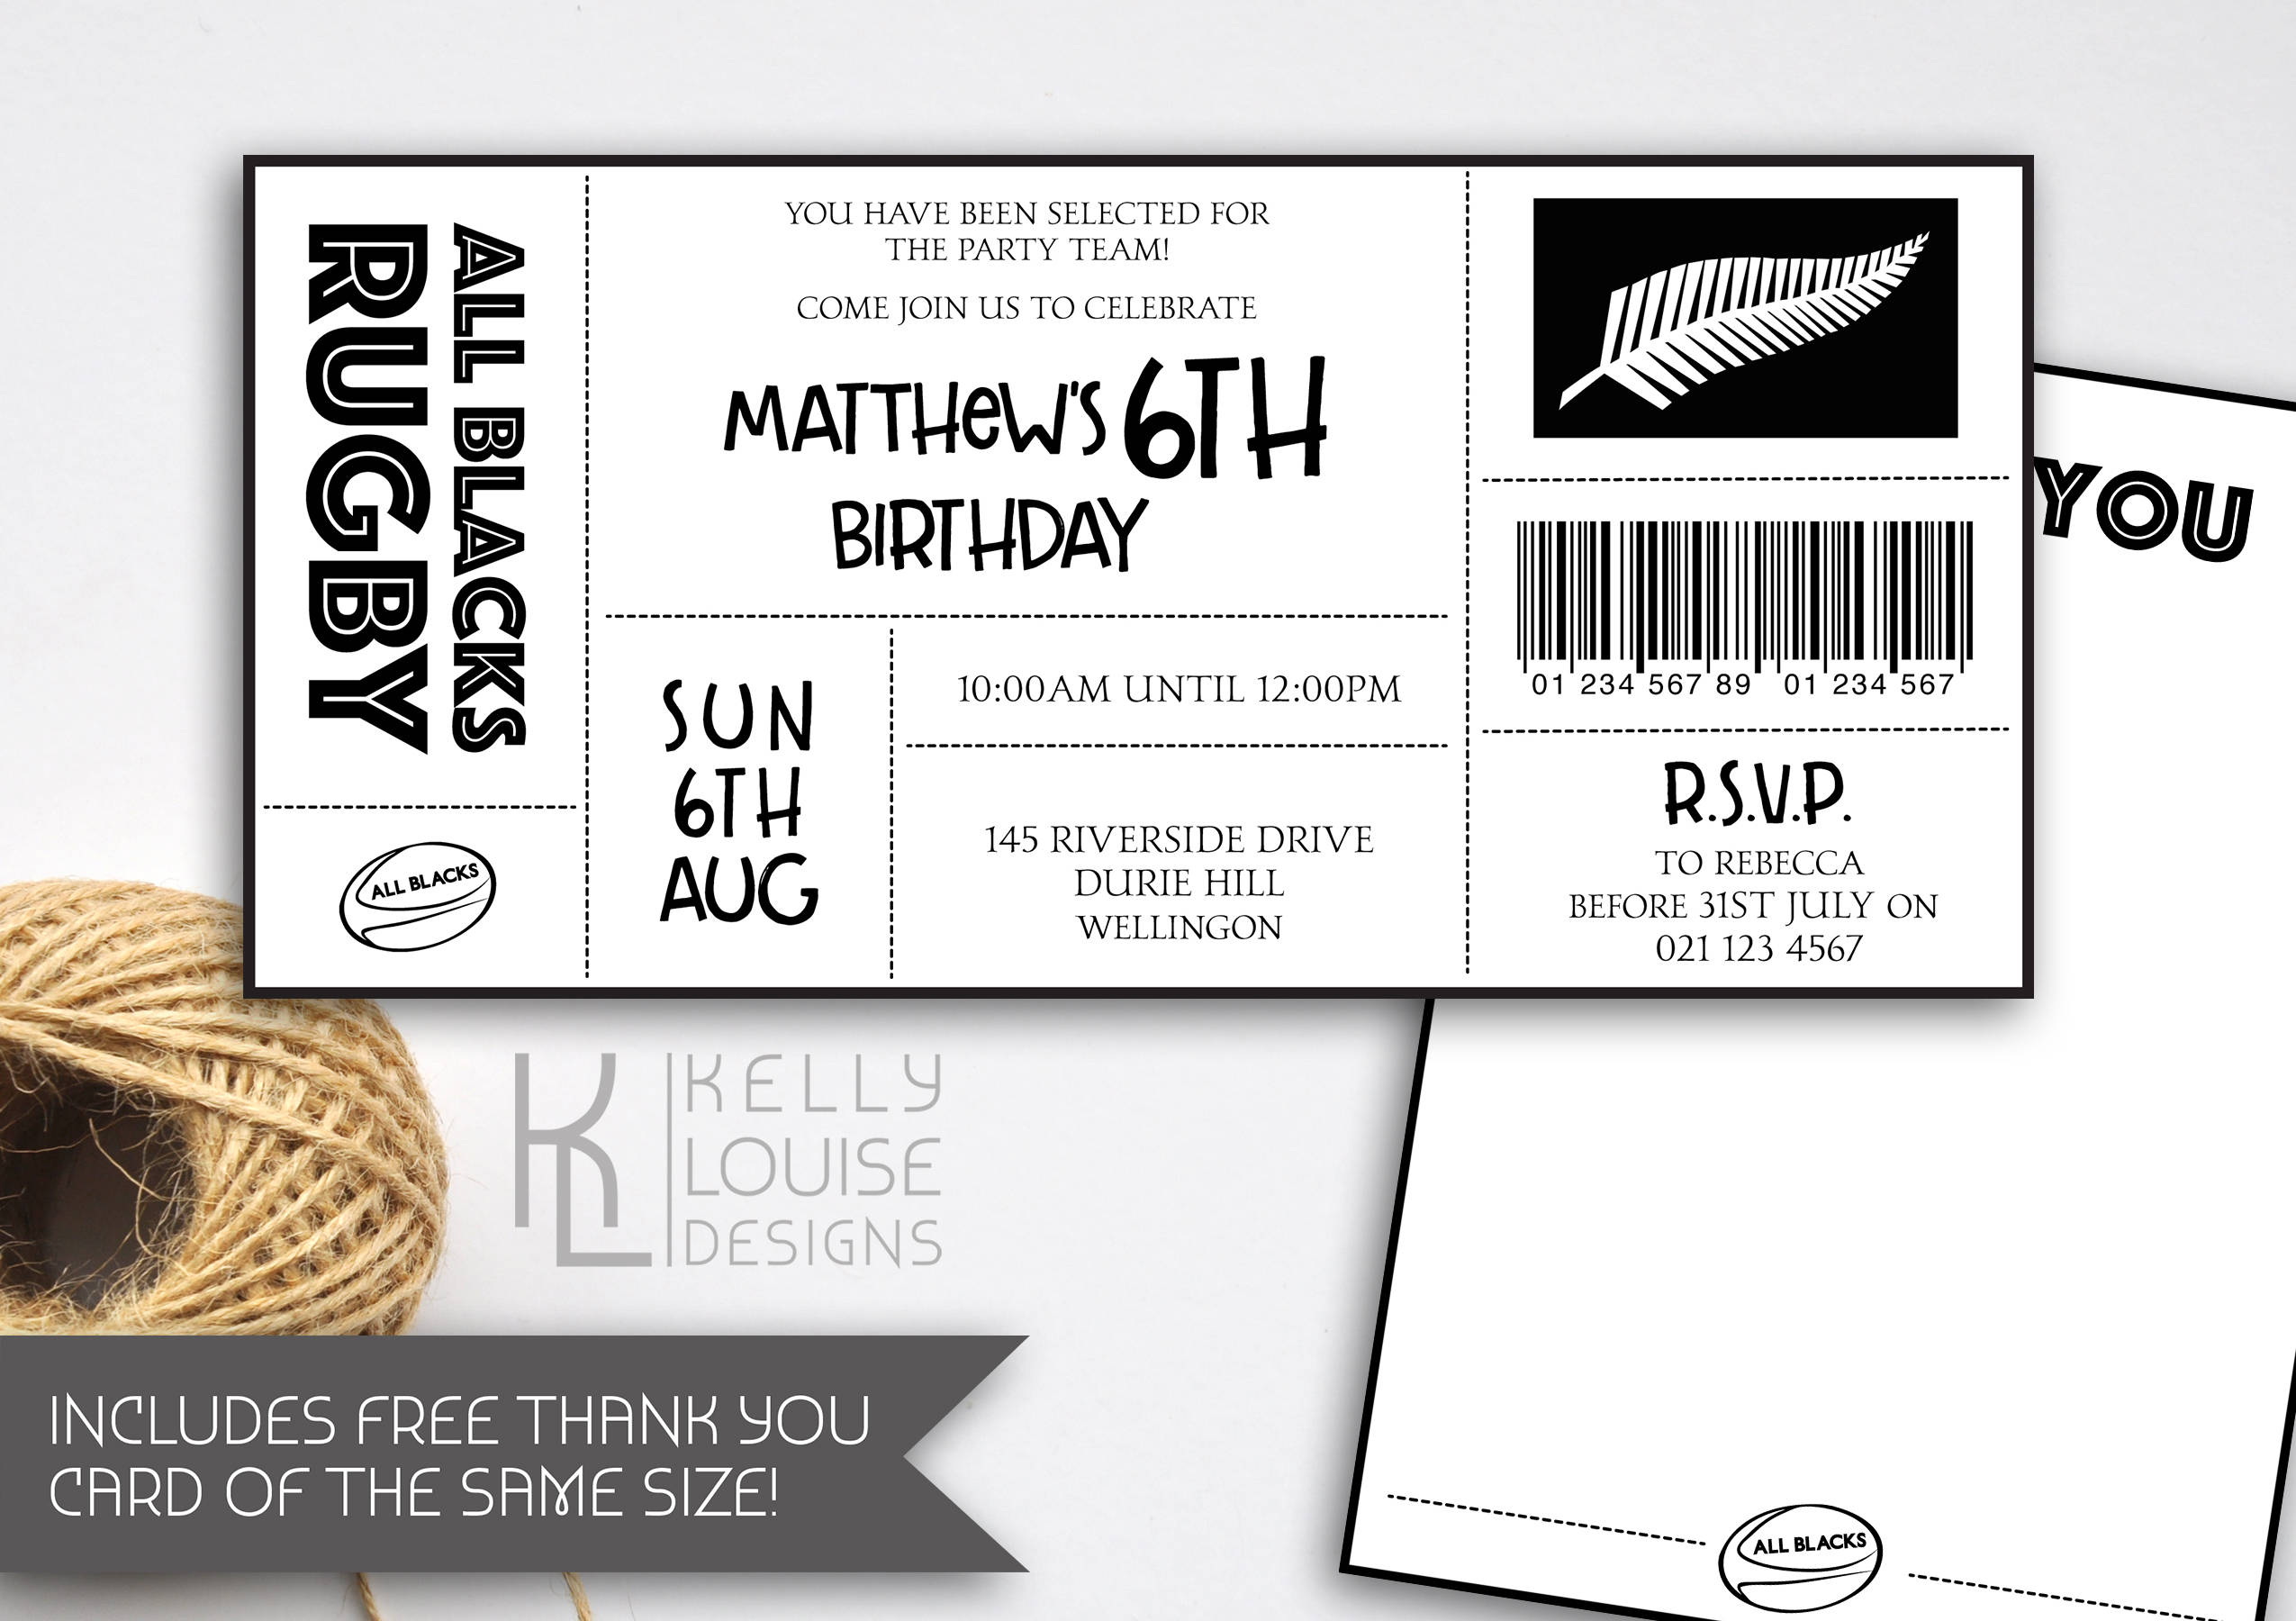 All Blacks Birthday Invitation Rugby Birthday Party All | Etsy